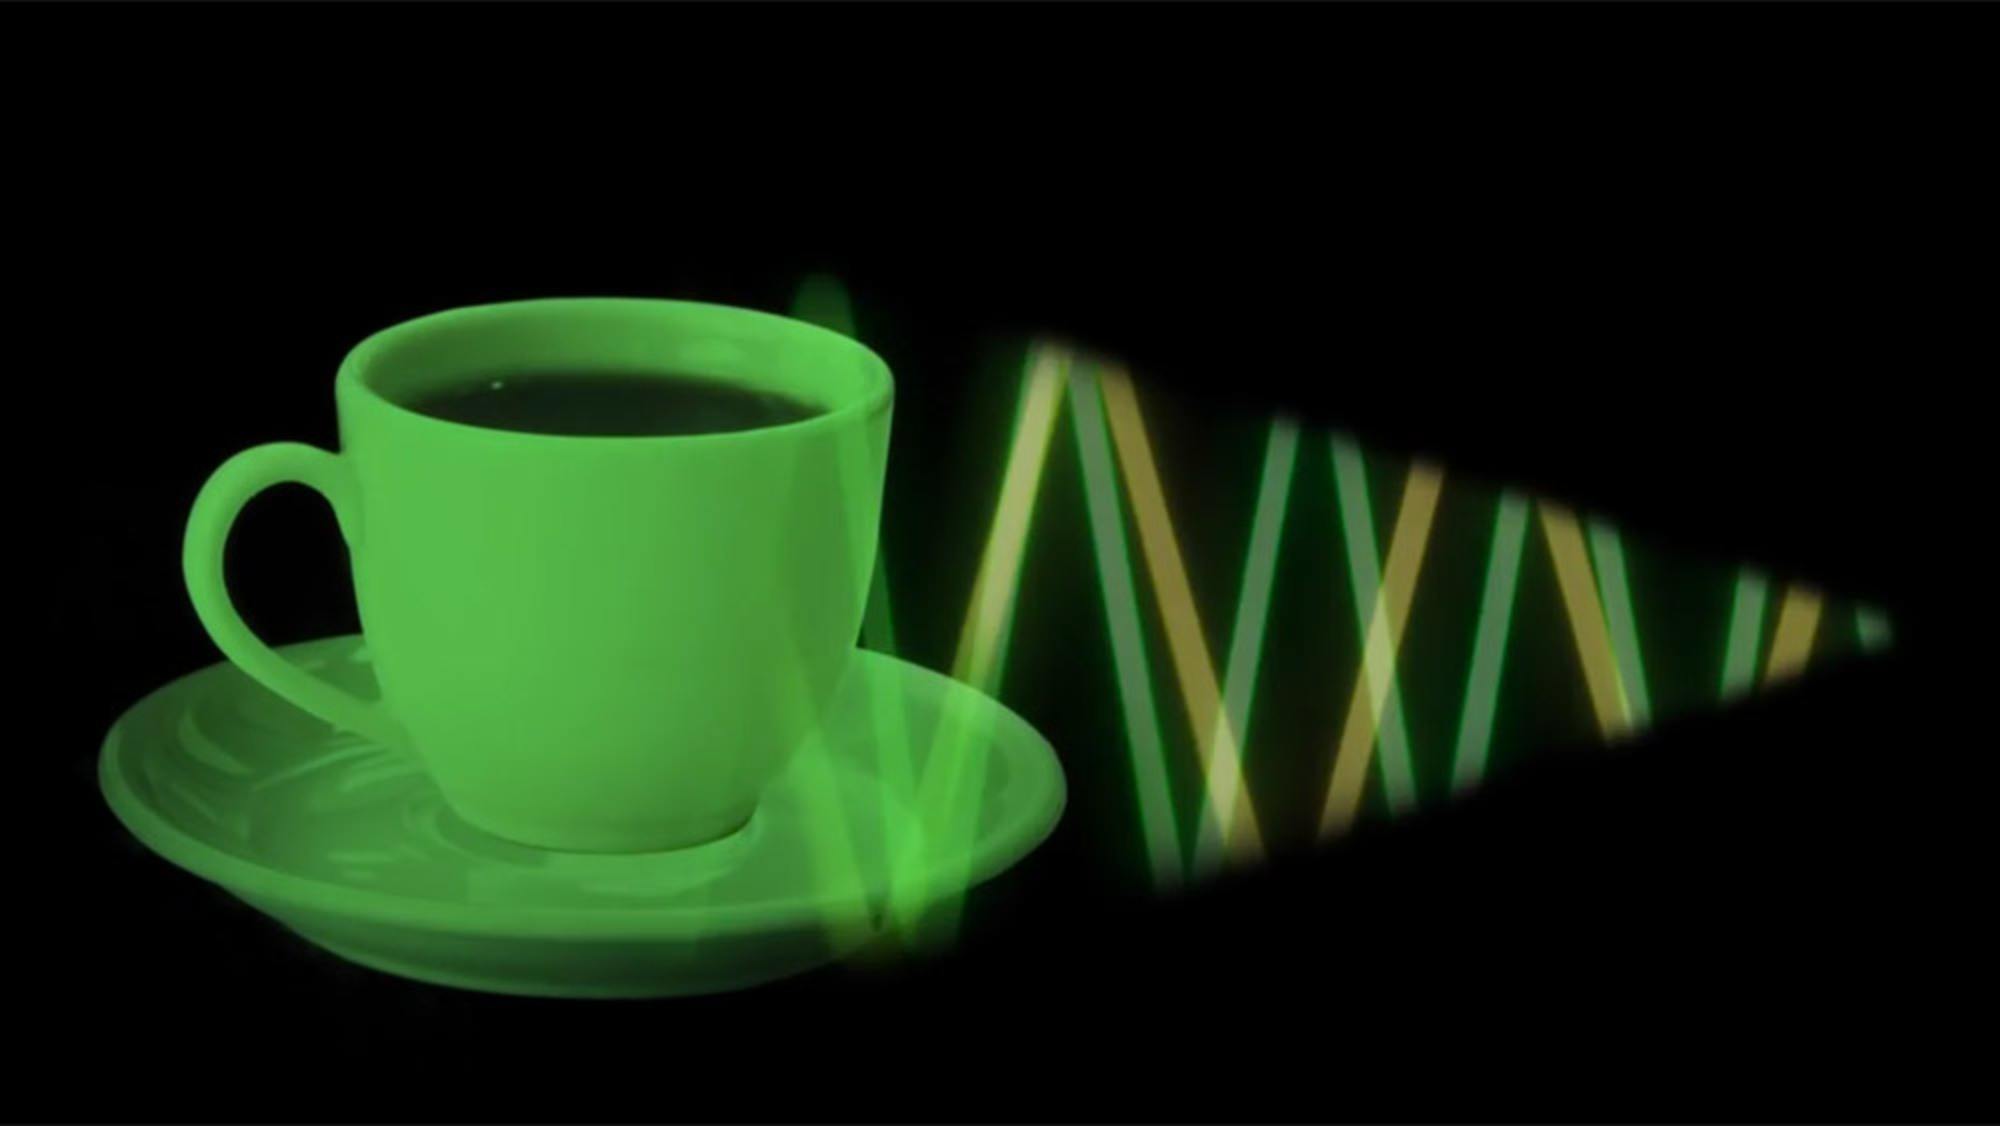 From relativity to quantum theory – our physical world explored through coffee | Aeon Videos